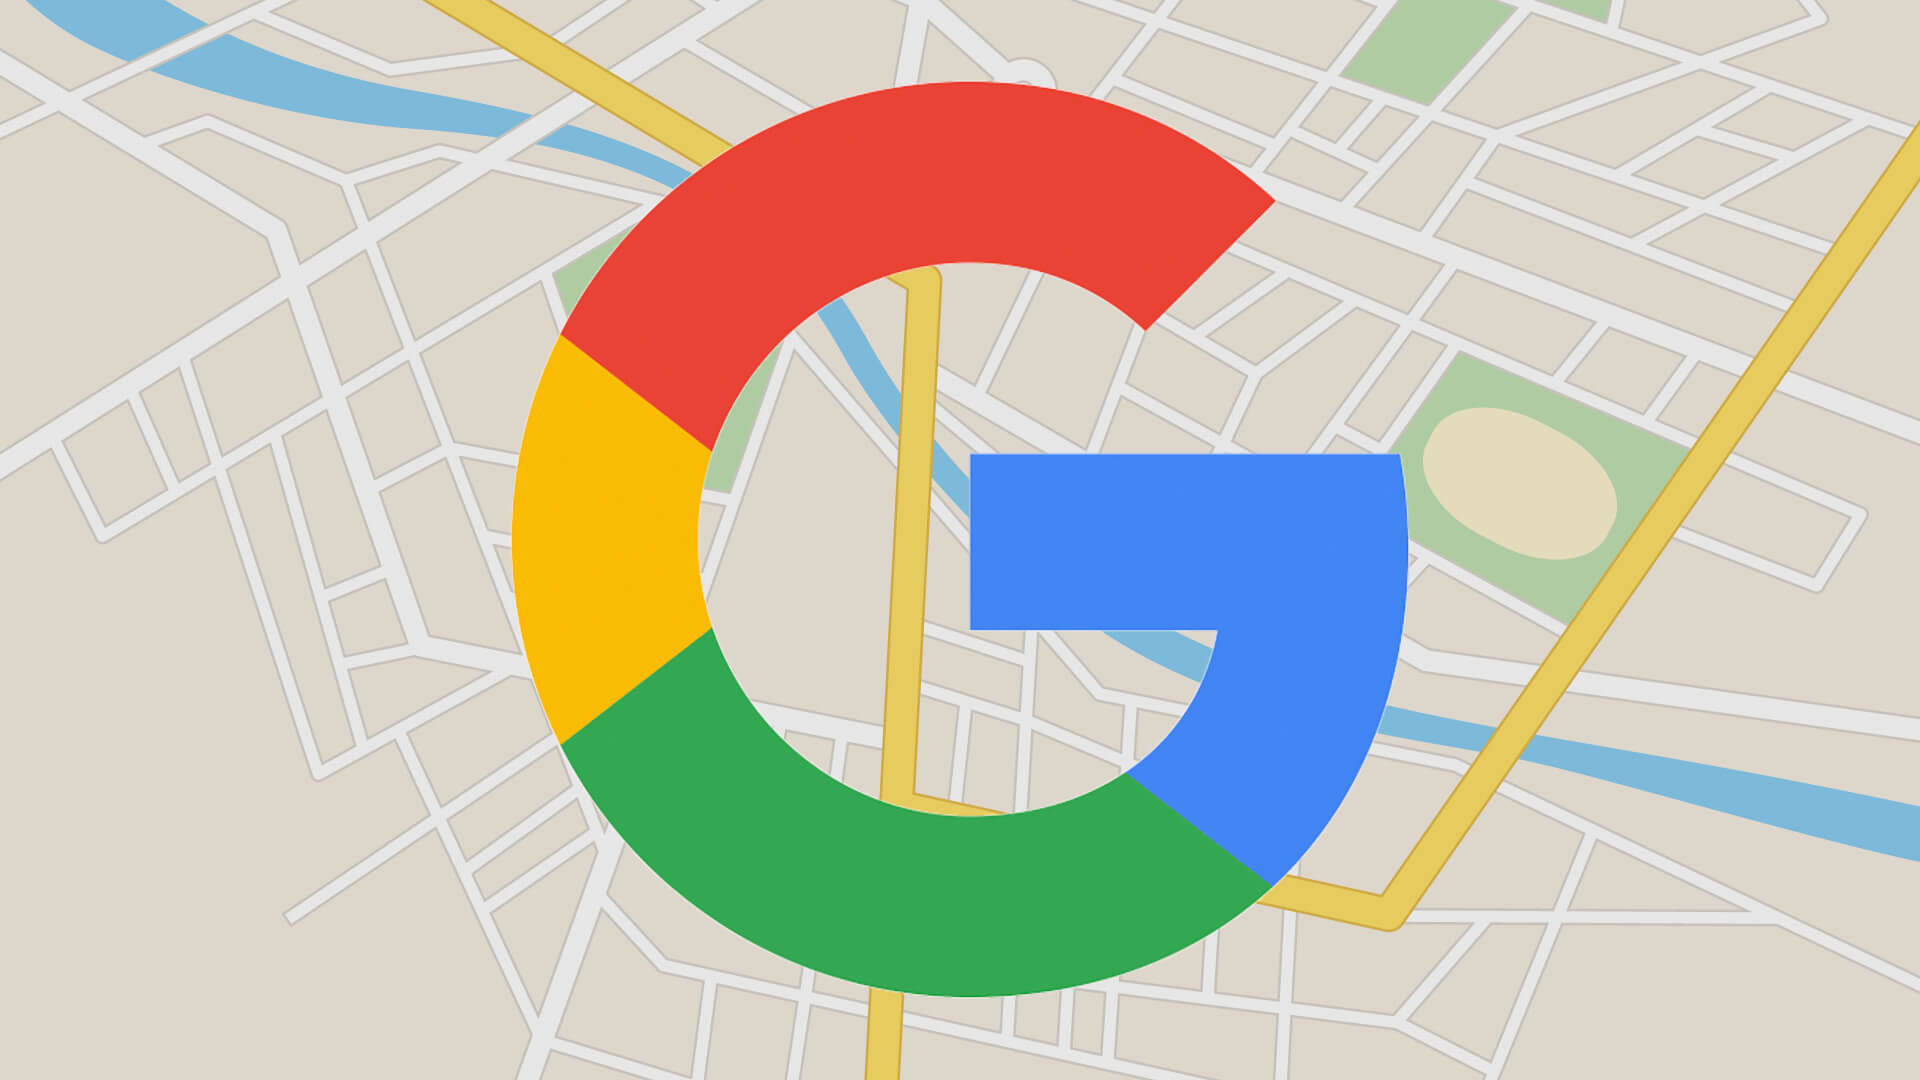 Google tests a Google My Business dashboard within the web search results